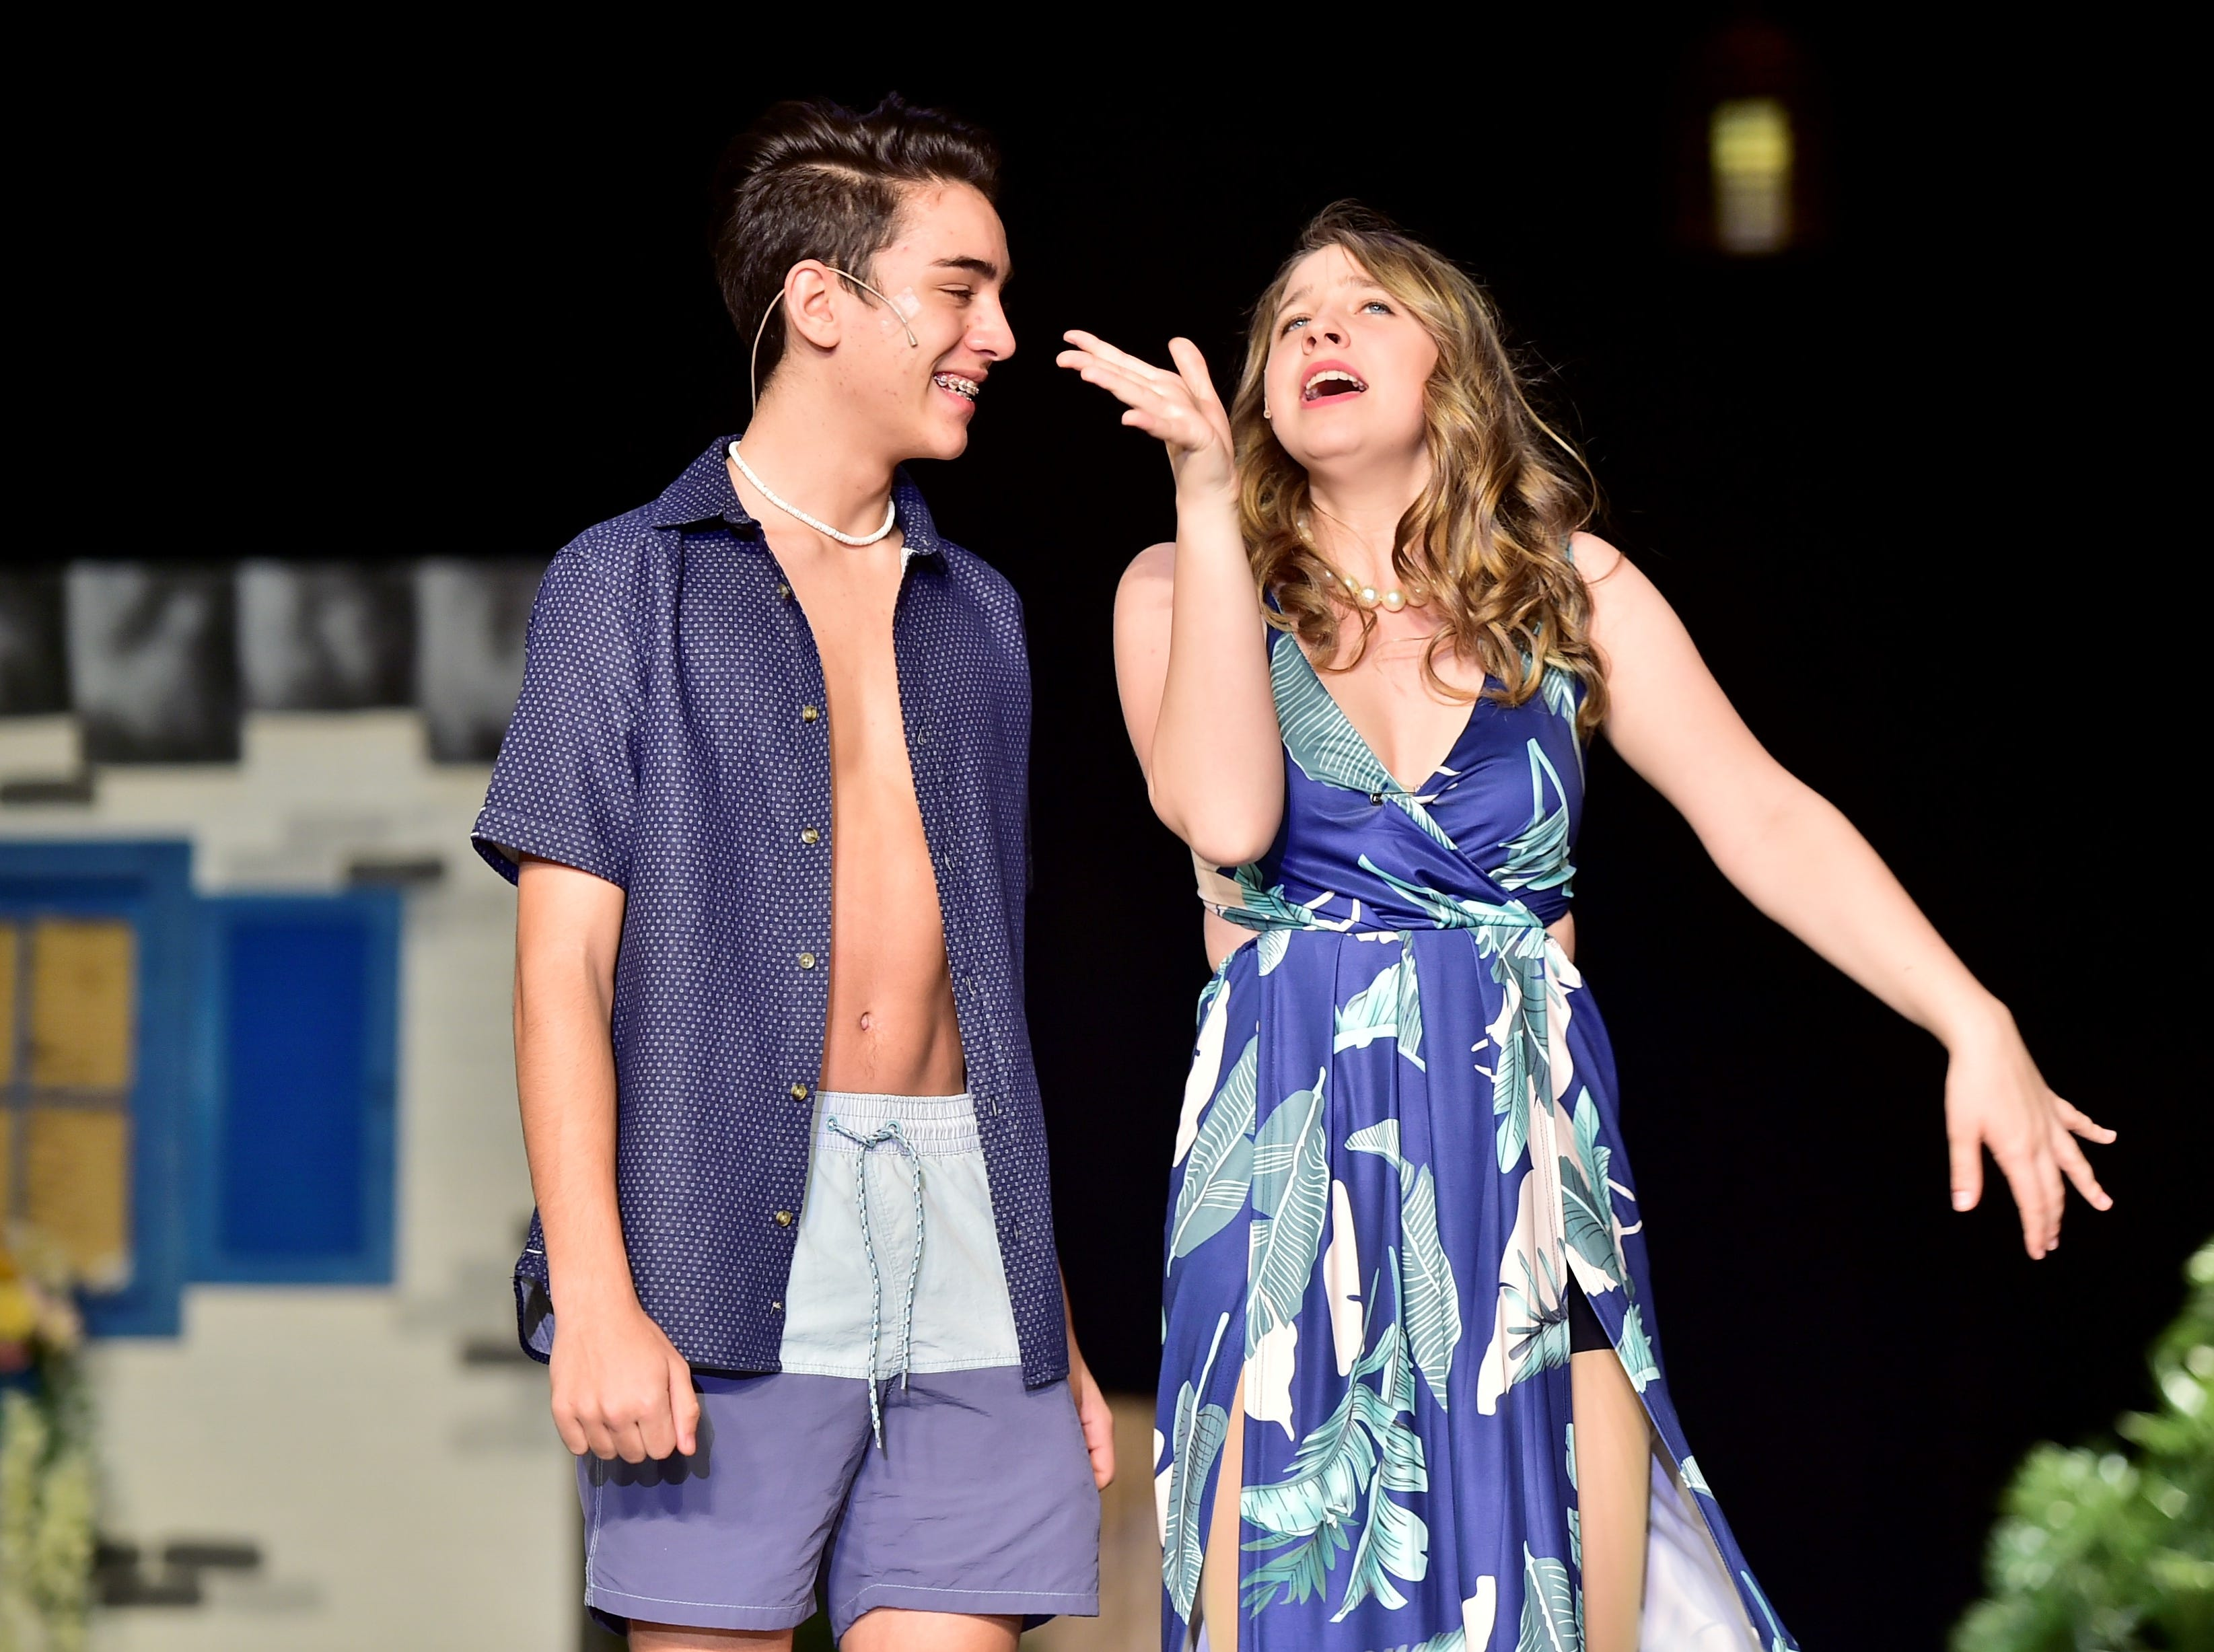 "The Chambersburg Area Senior High School Drama Club will perform the popular musical ""Mamma Mia!"" at 7:30 p.m. Friday and Saturday and 2:30 p.m. Saturday. Tickets ($8 for adults, $5 for students/children) will be sold at the door; no reserved seating. For more information, call 717-261-3322, ext. 80401."